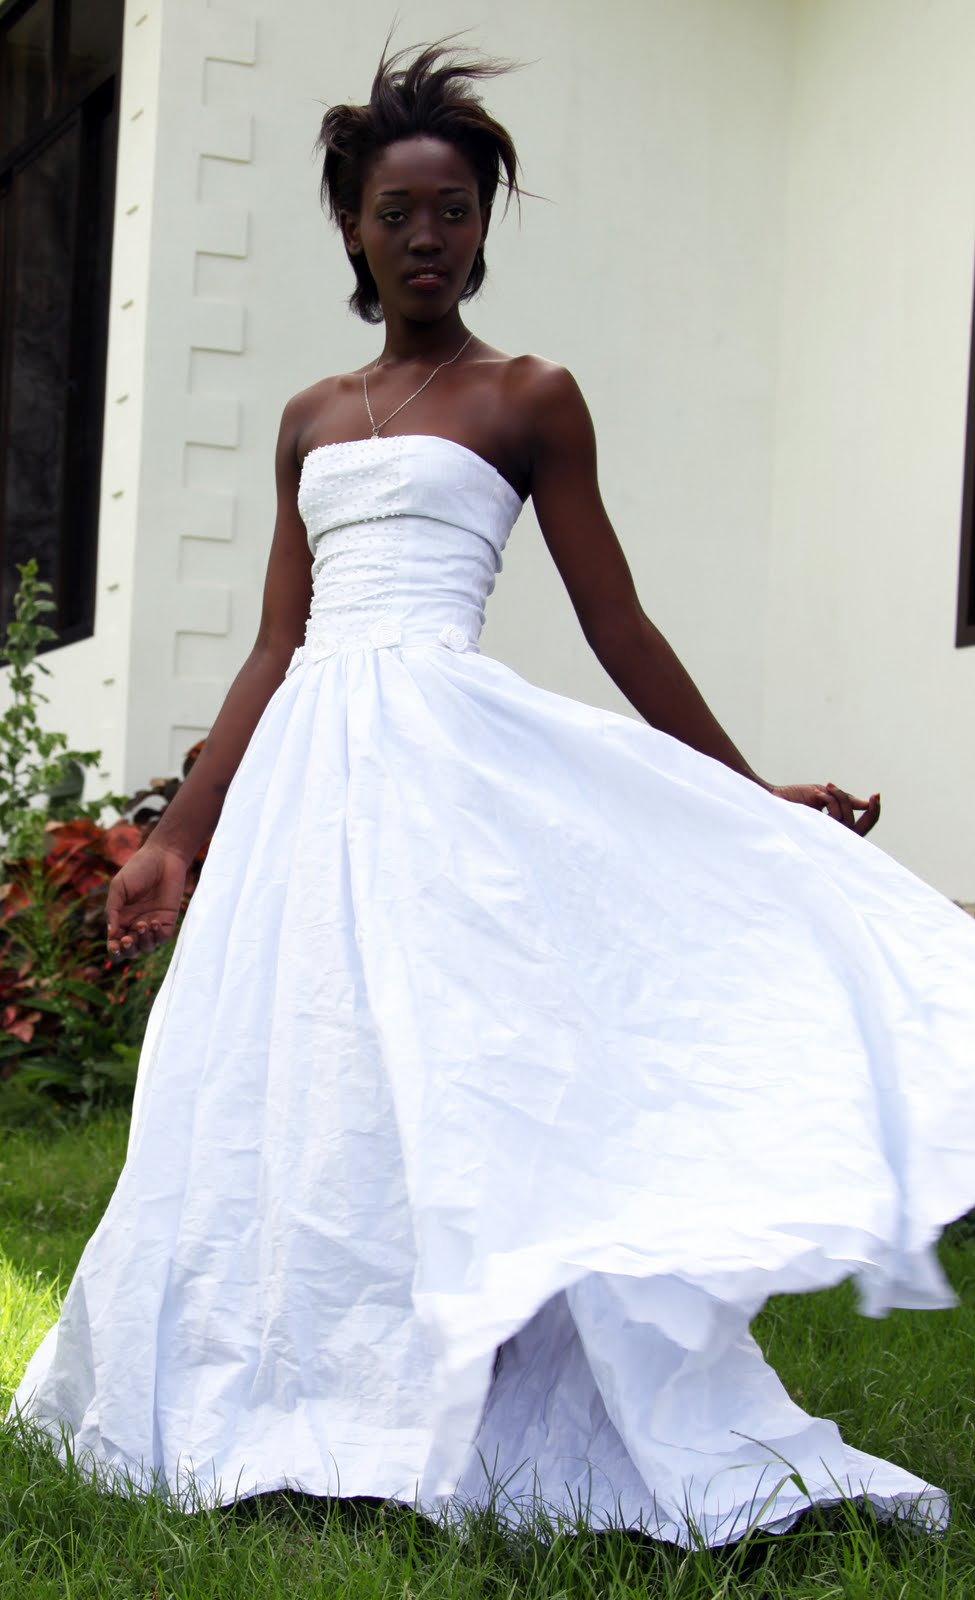 African Wedding Dress-20 Outfits To Wear For African Wedding  |African Wedding Dresses